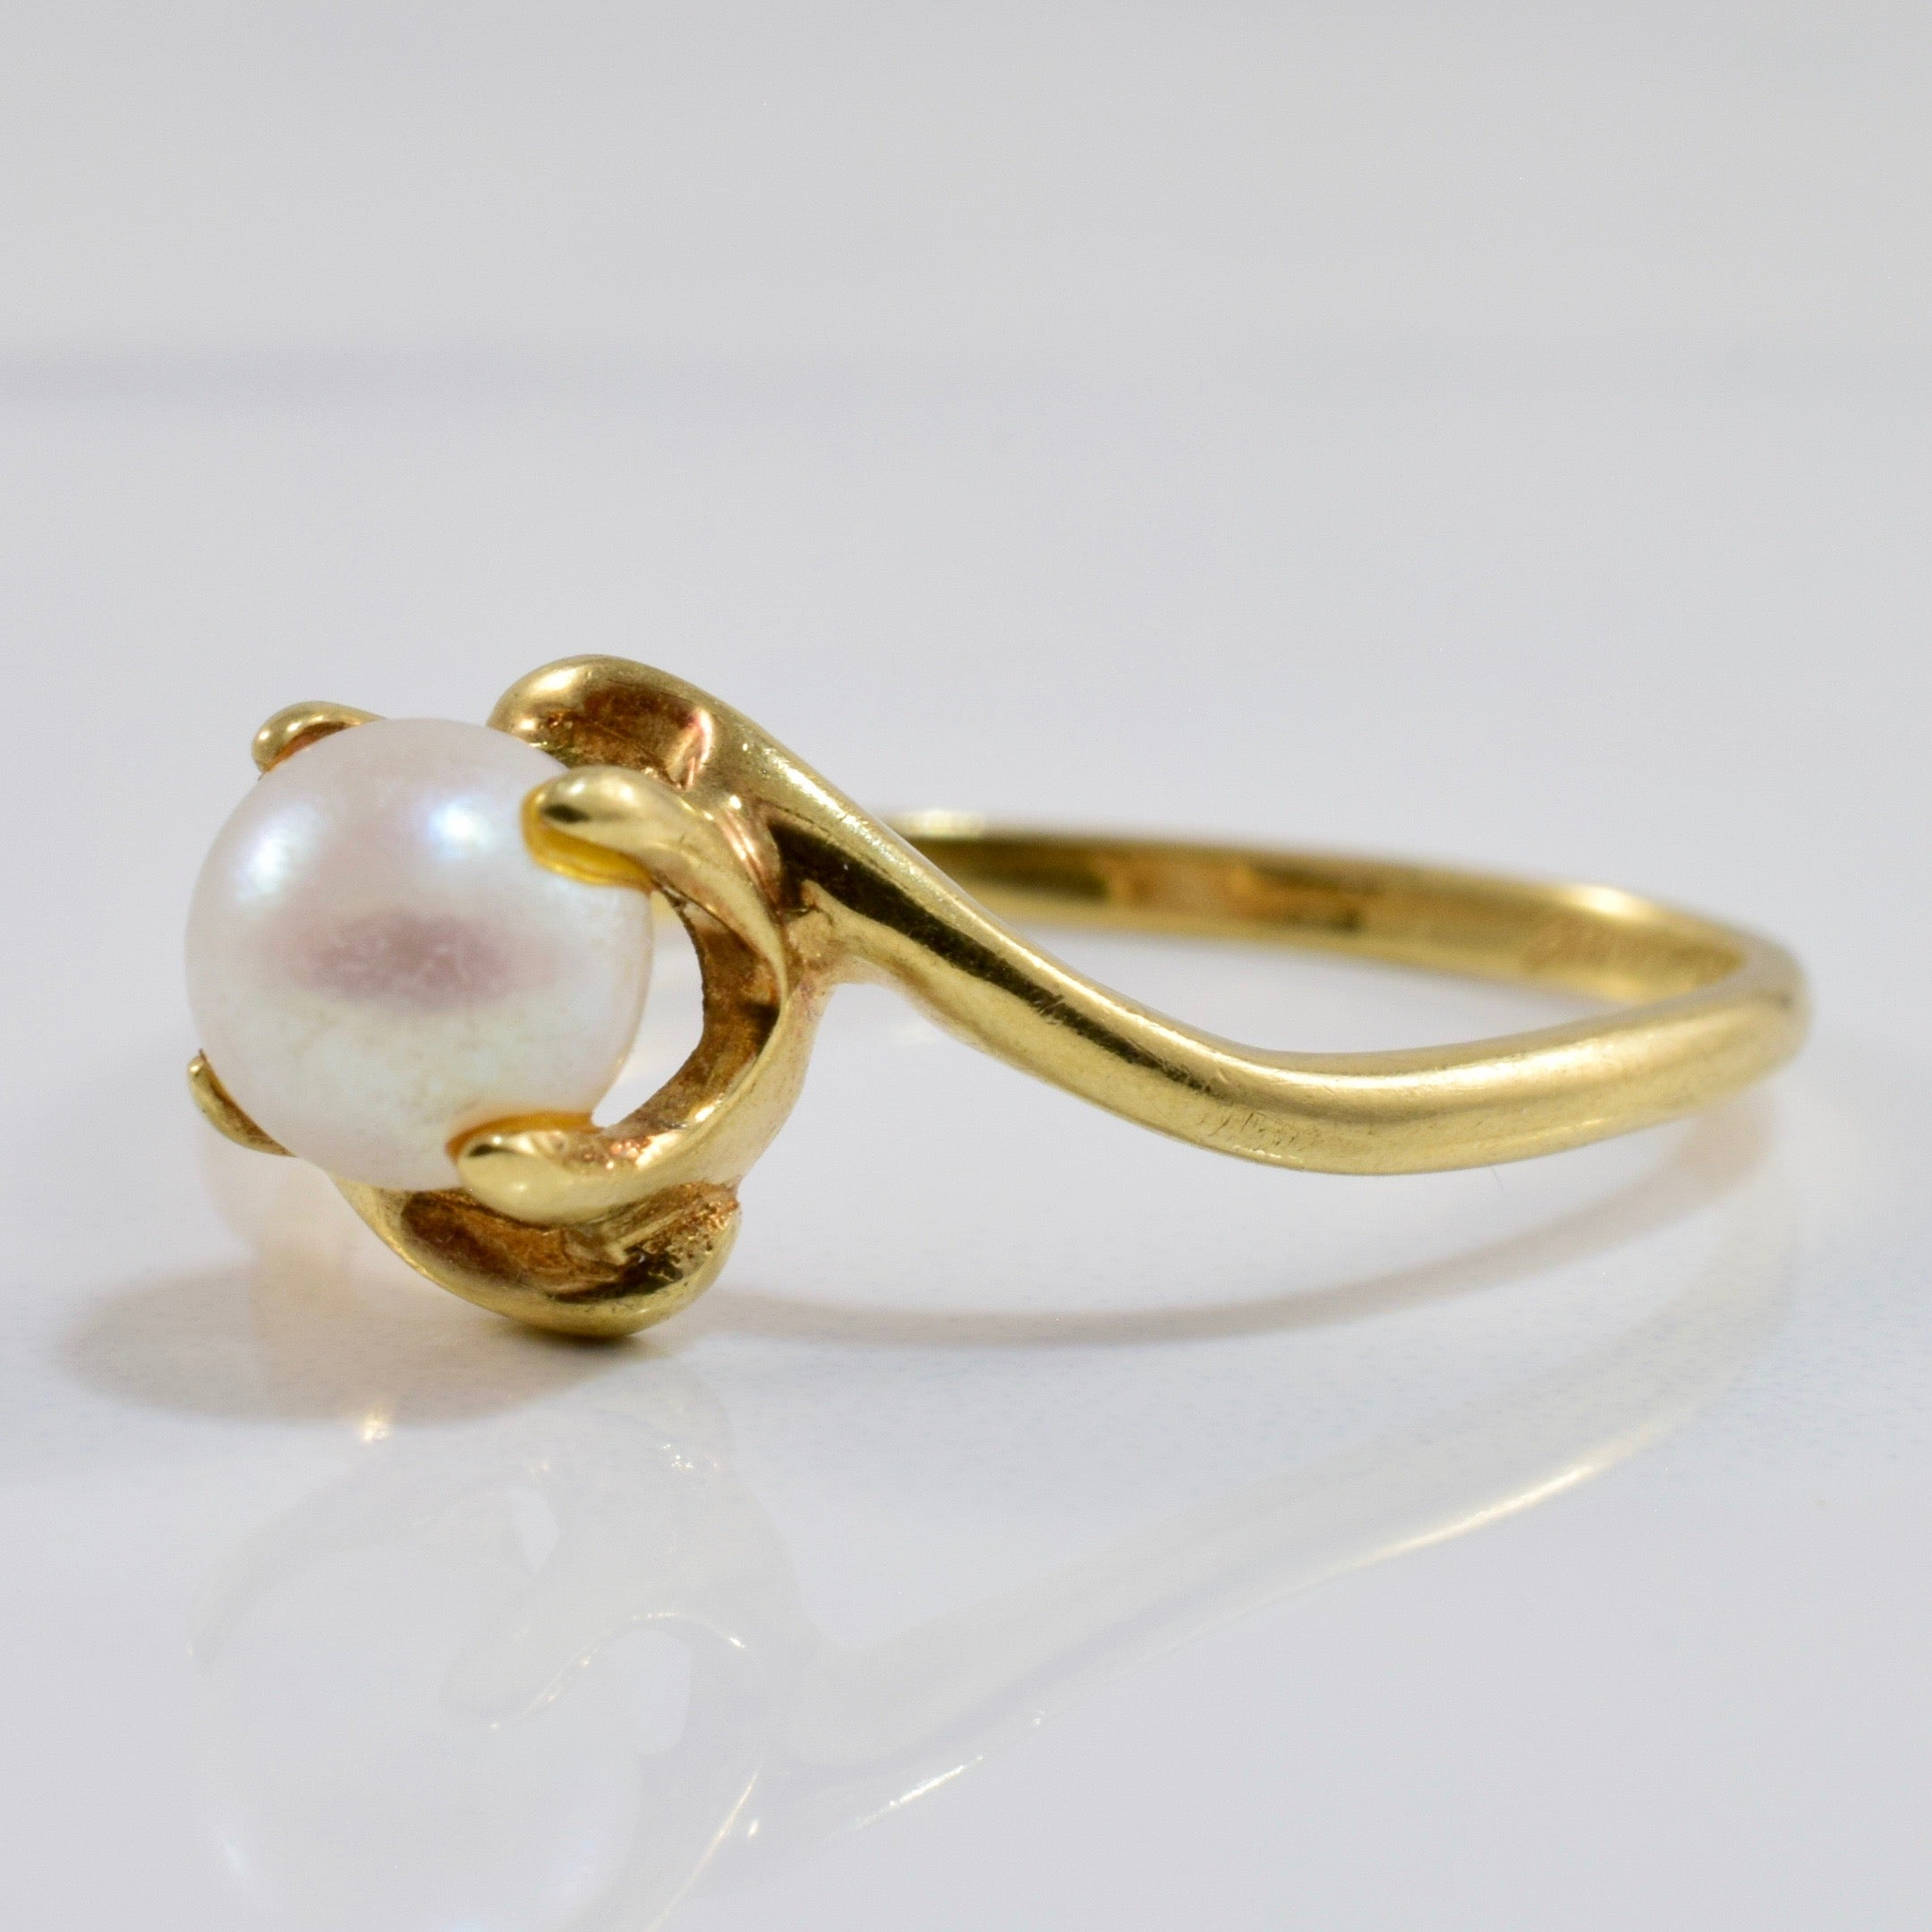 Pearl Bypass Ring | SZ 7.5 |